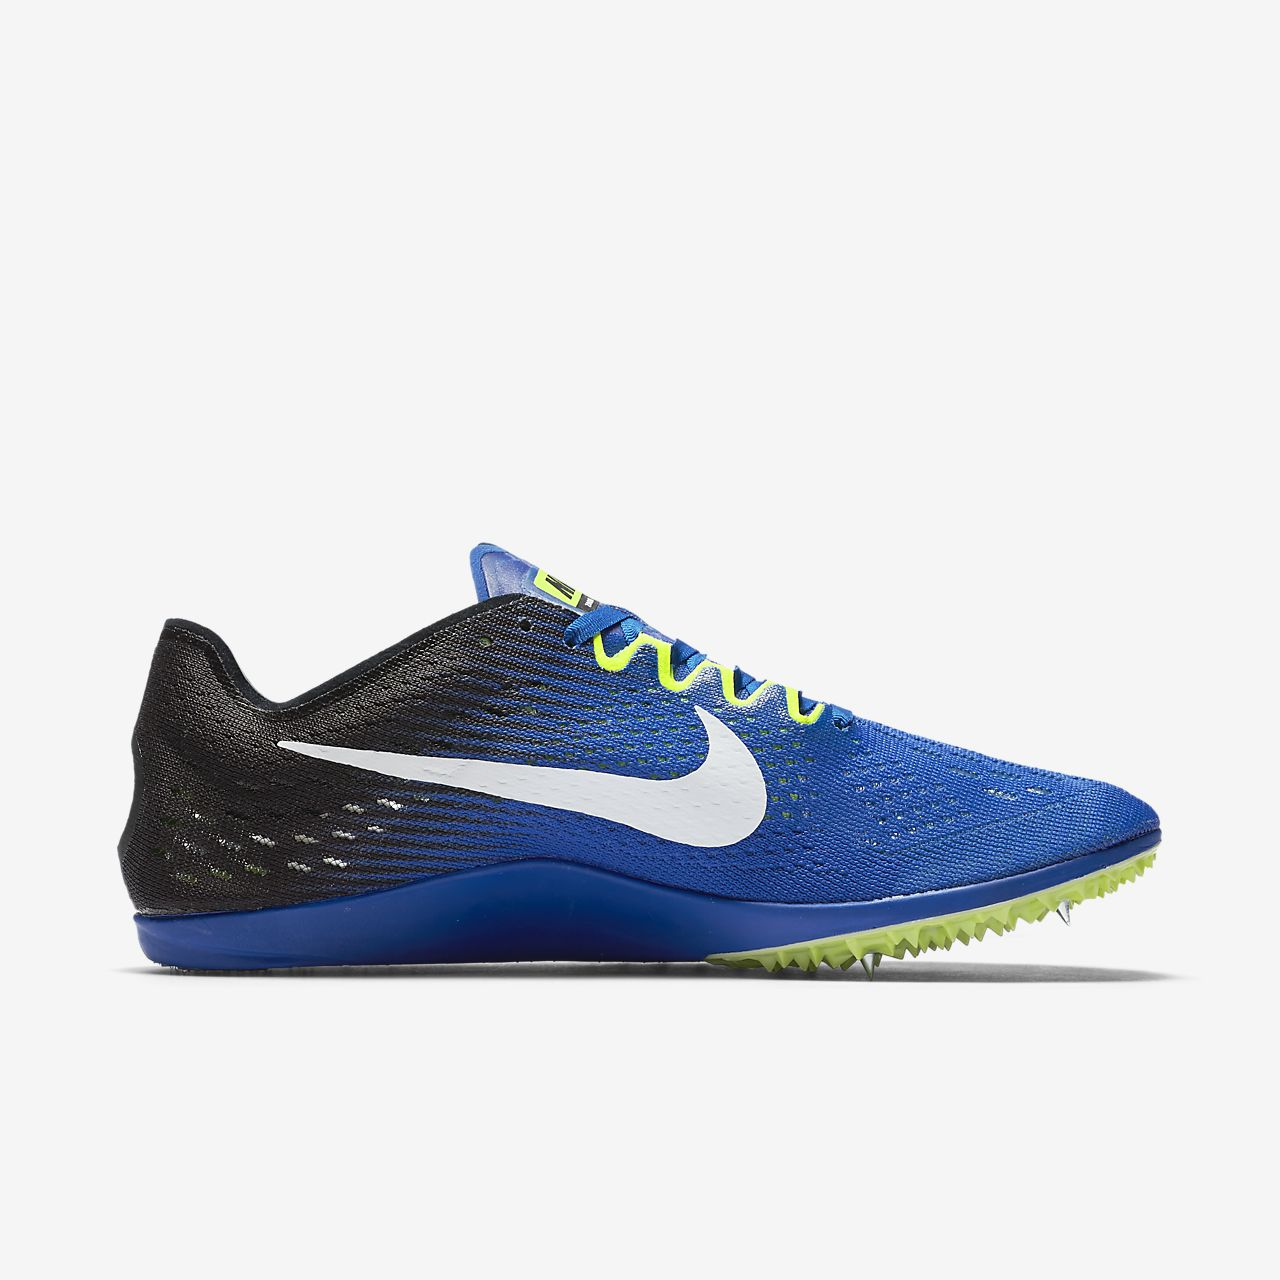 reputable site 888ae 7e0b3 ... Nike Zoom Matumbo 3 Unisex Distance Spike